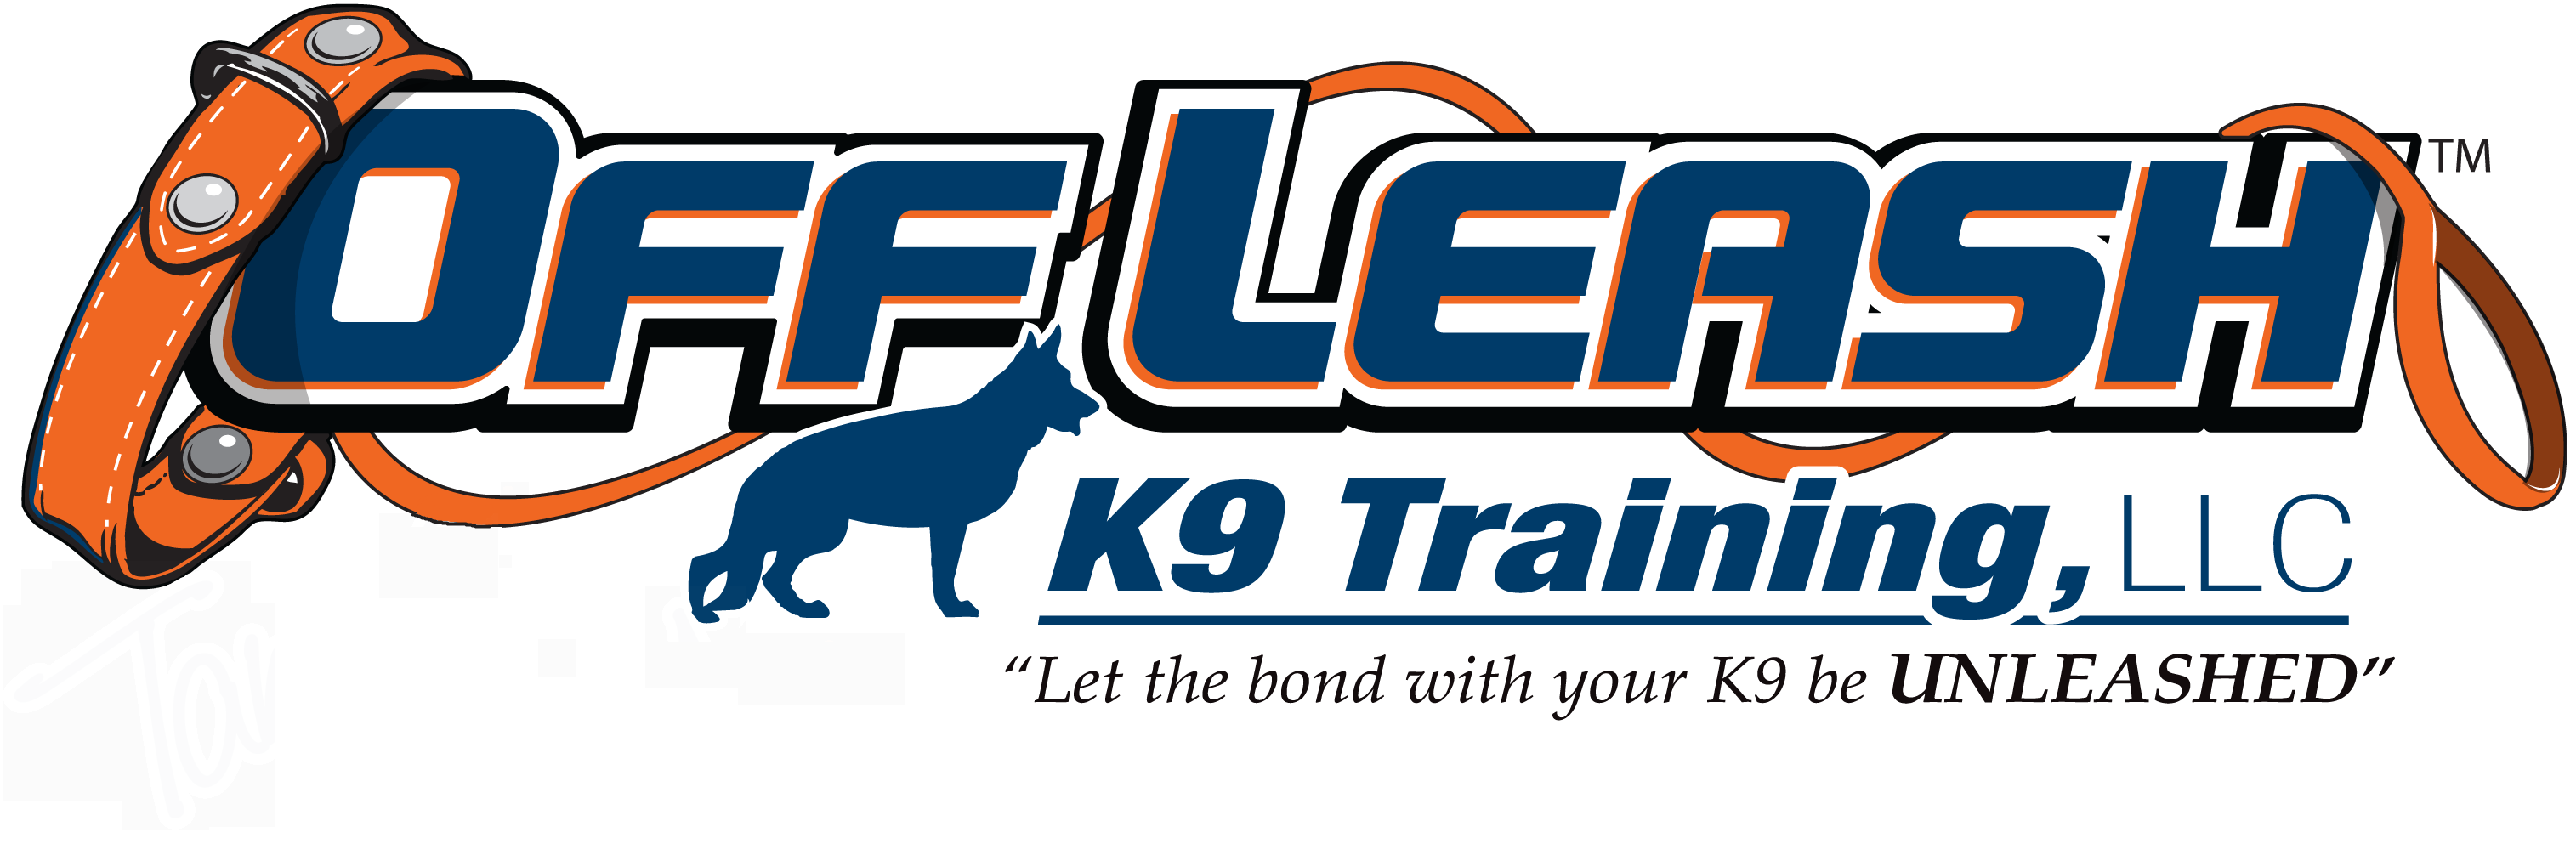 Offleash K9 Dog Training Seminars